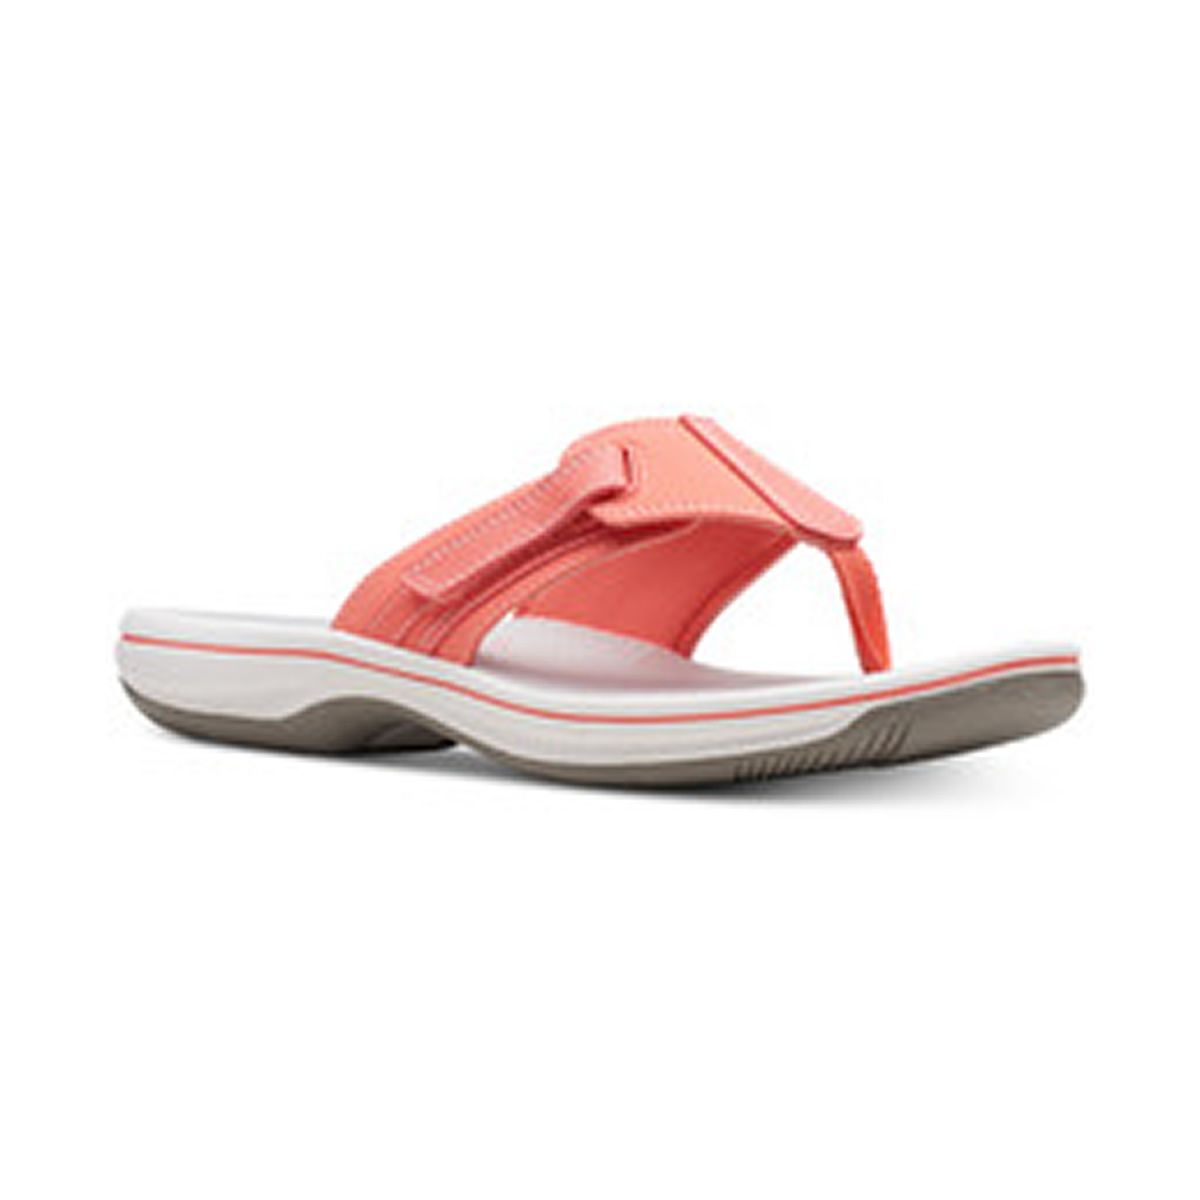 4b893f5da5a Sandals · Wedges. Wedges · Created for Macys